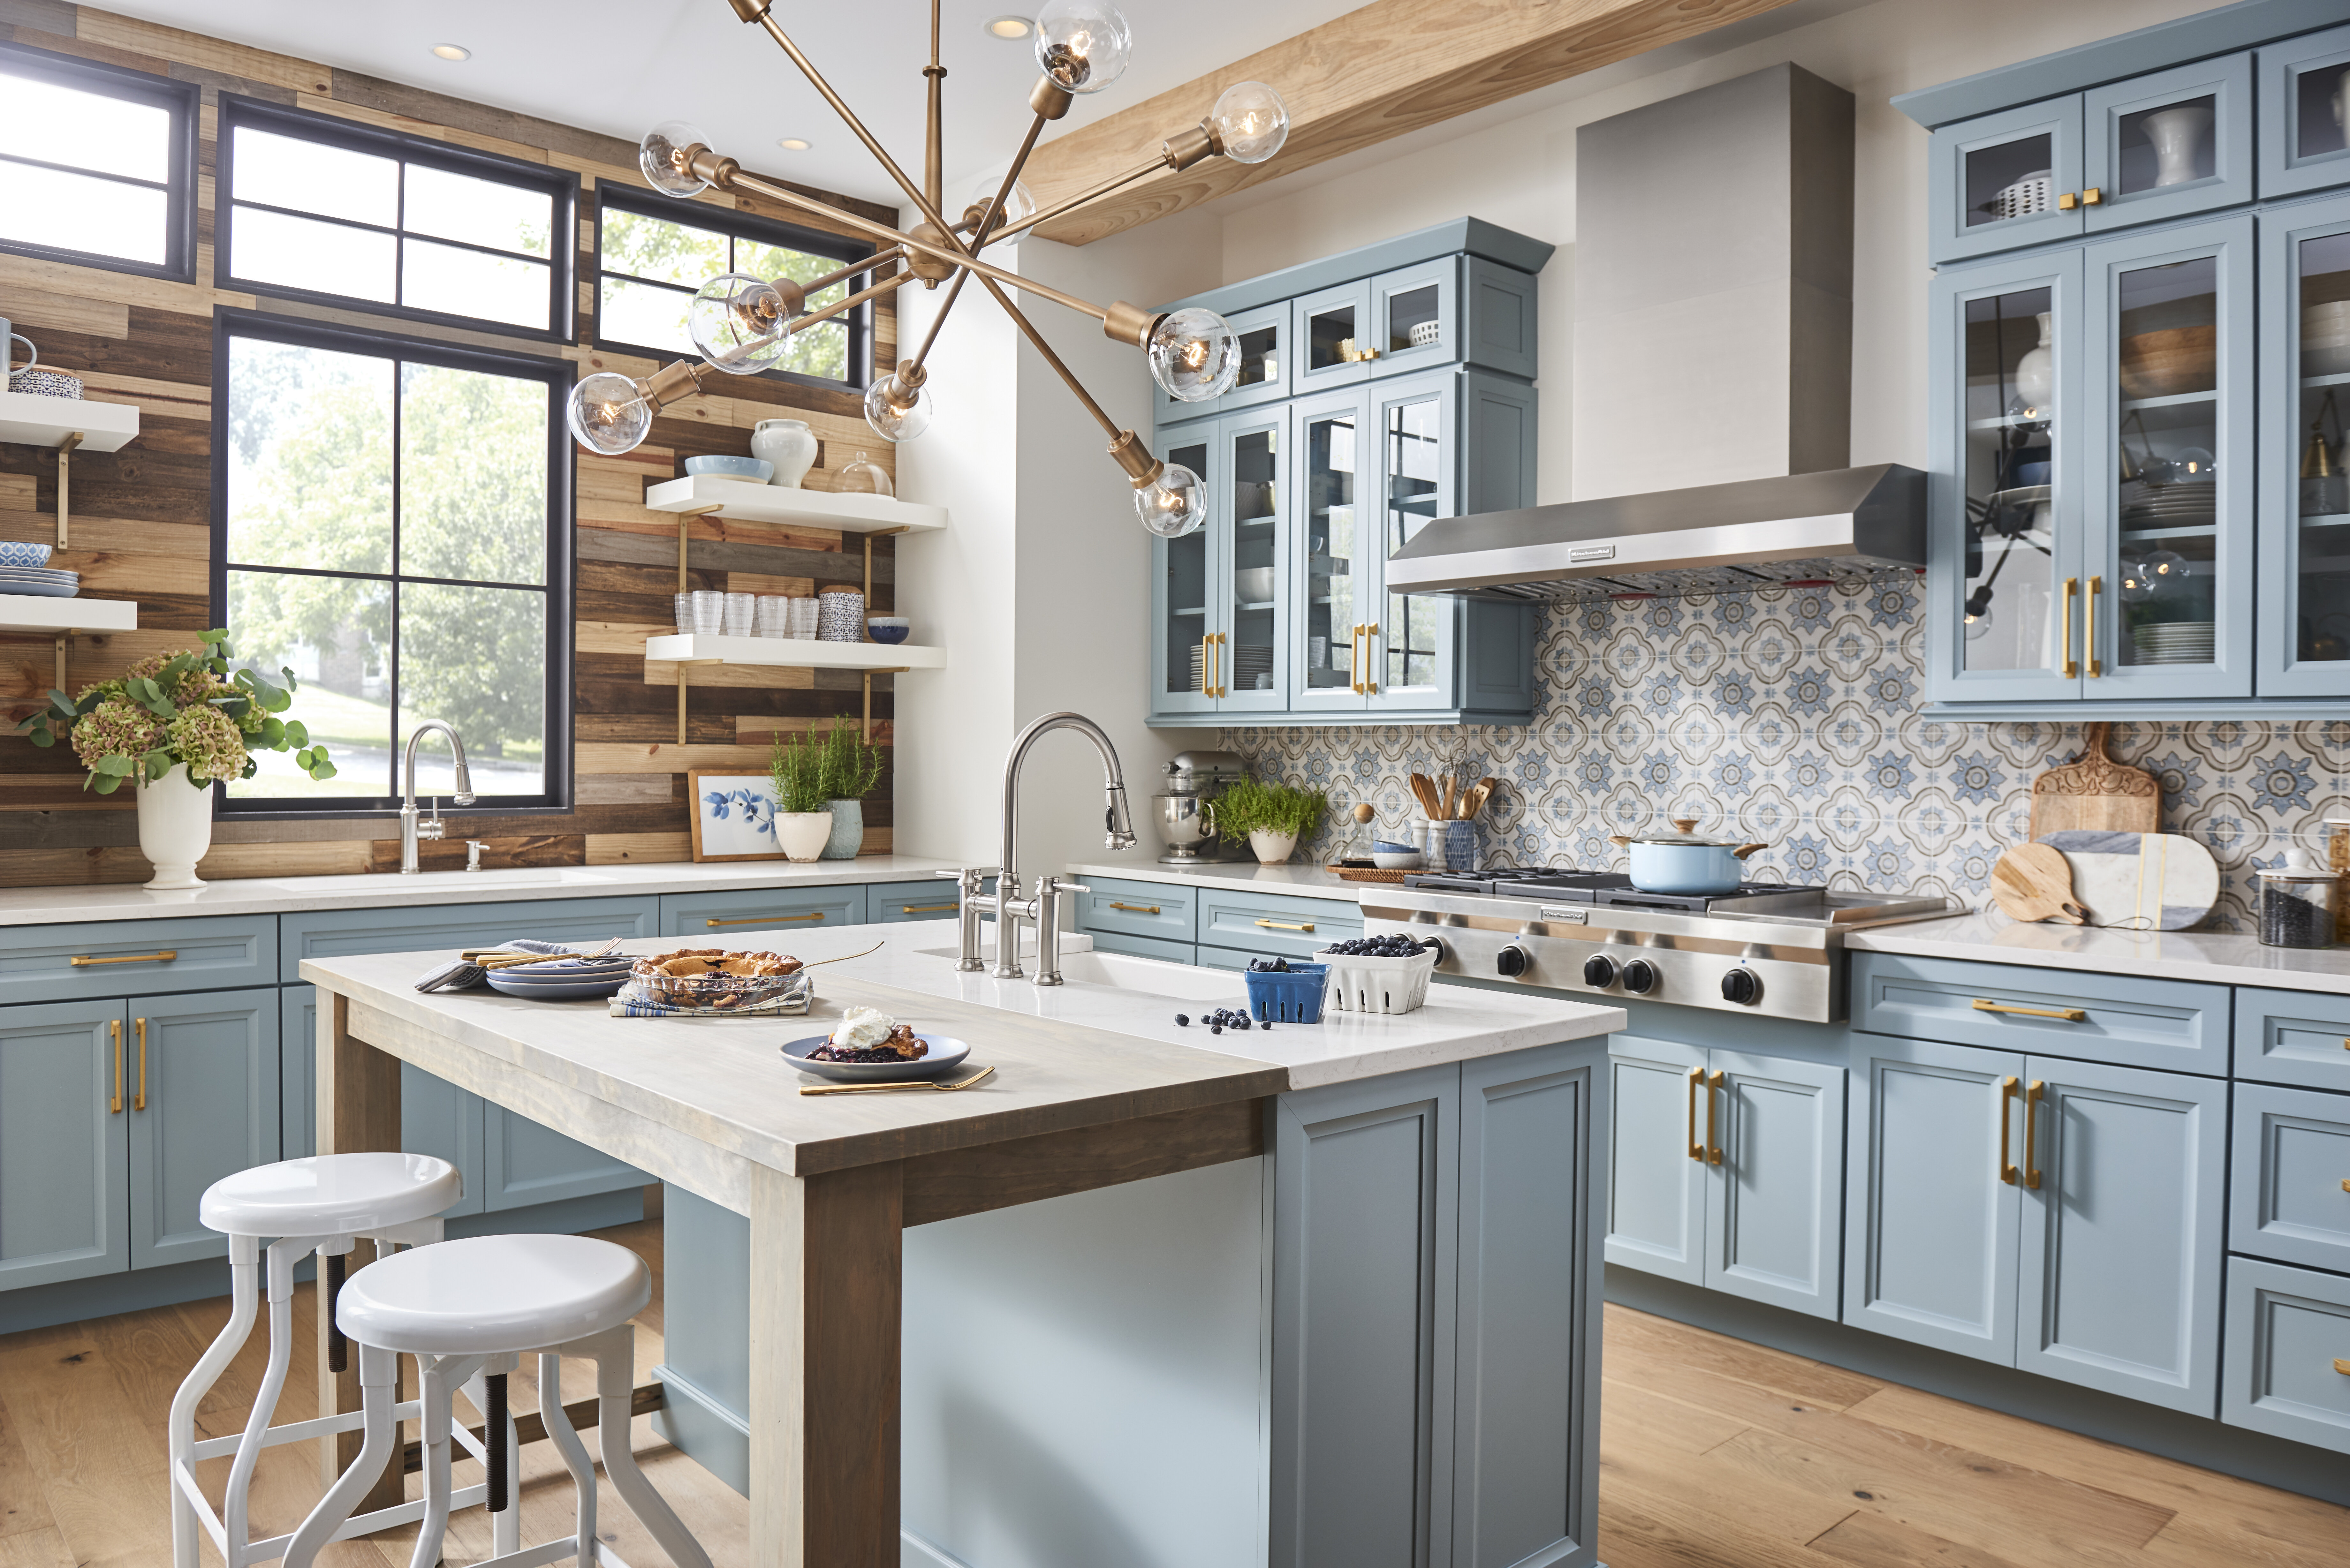 32 Farmhouse Kitchens That Are Seriously Stunning With Photos ...